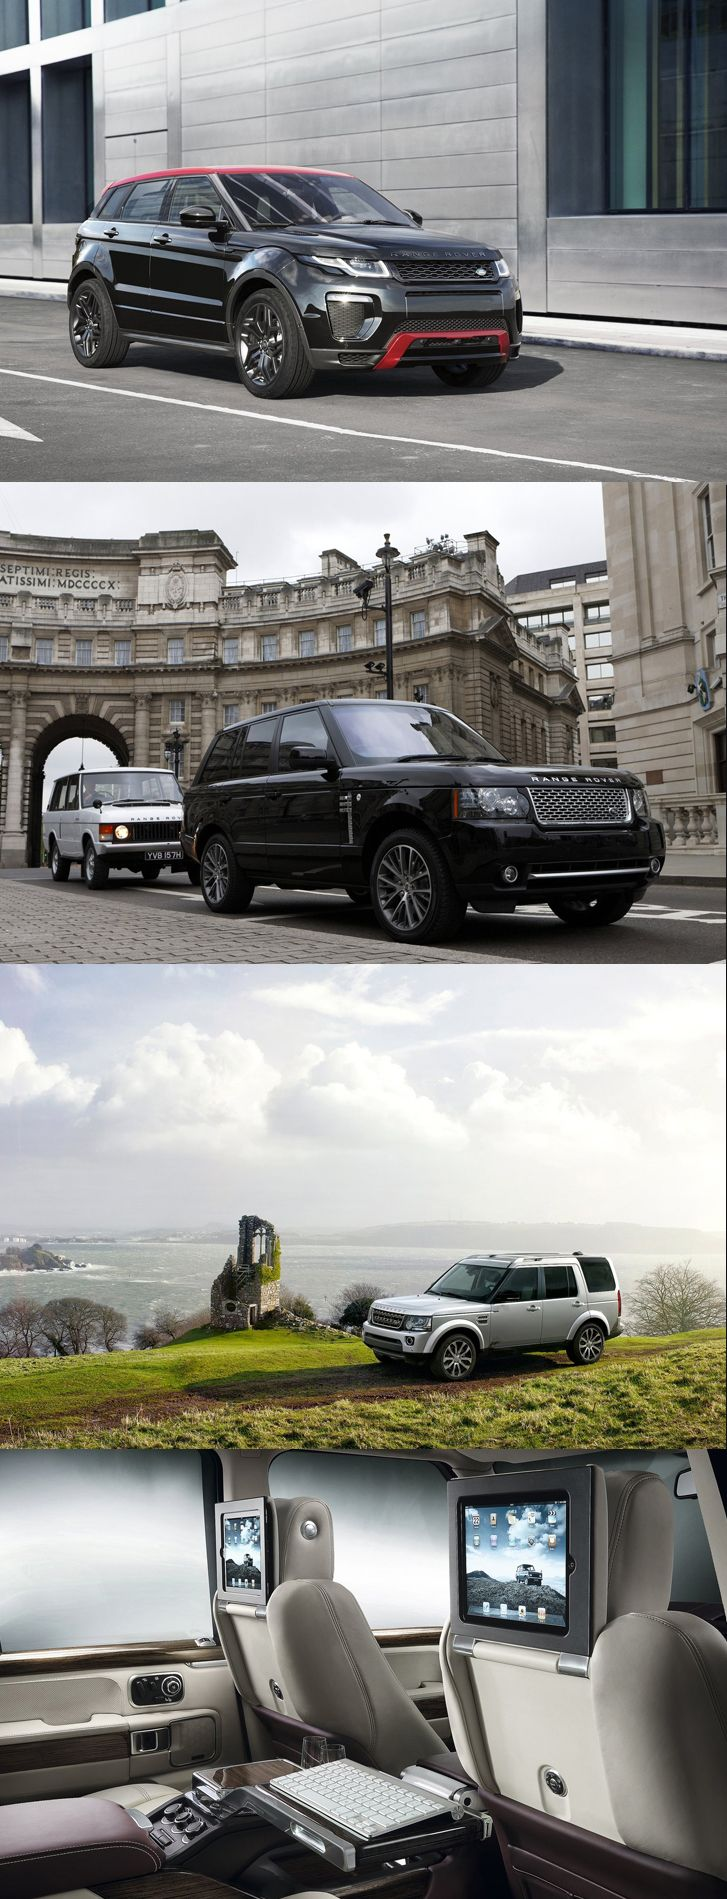 RANGE ROVER A LUXURIOUS OFF ROAD VEHICLE https://www.rangerovergearbox.co.uk/blog/range-rover-luxurious-off-road-vehicle/